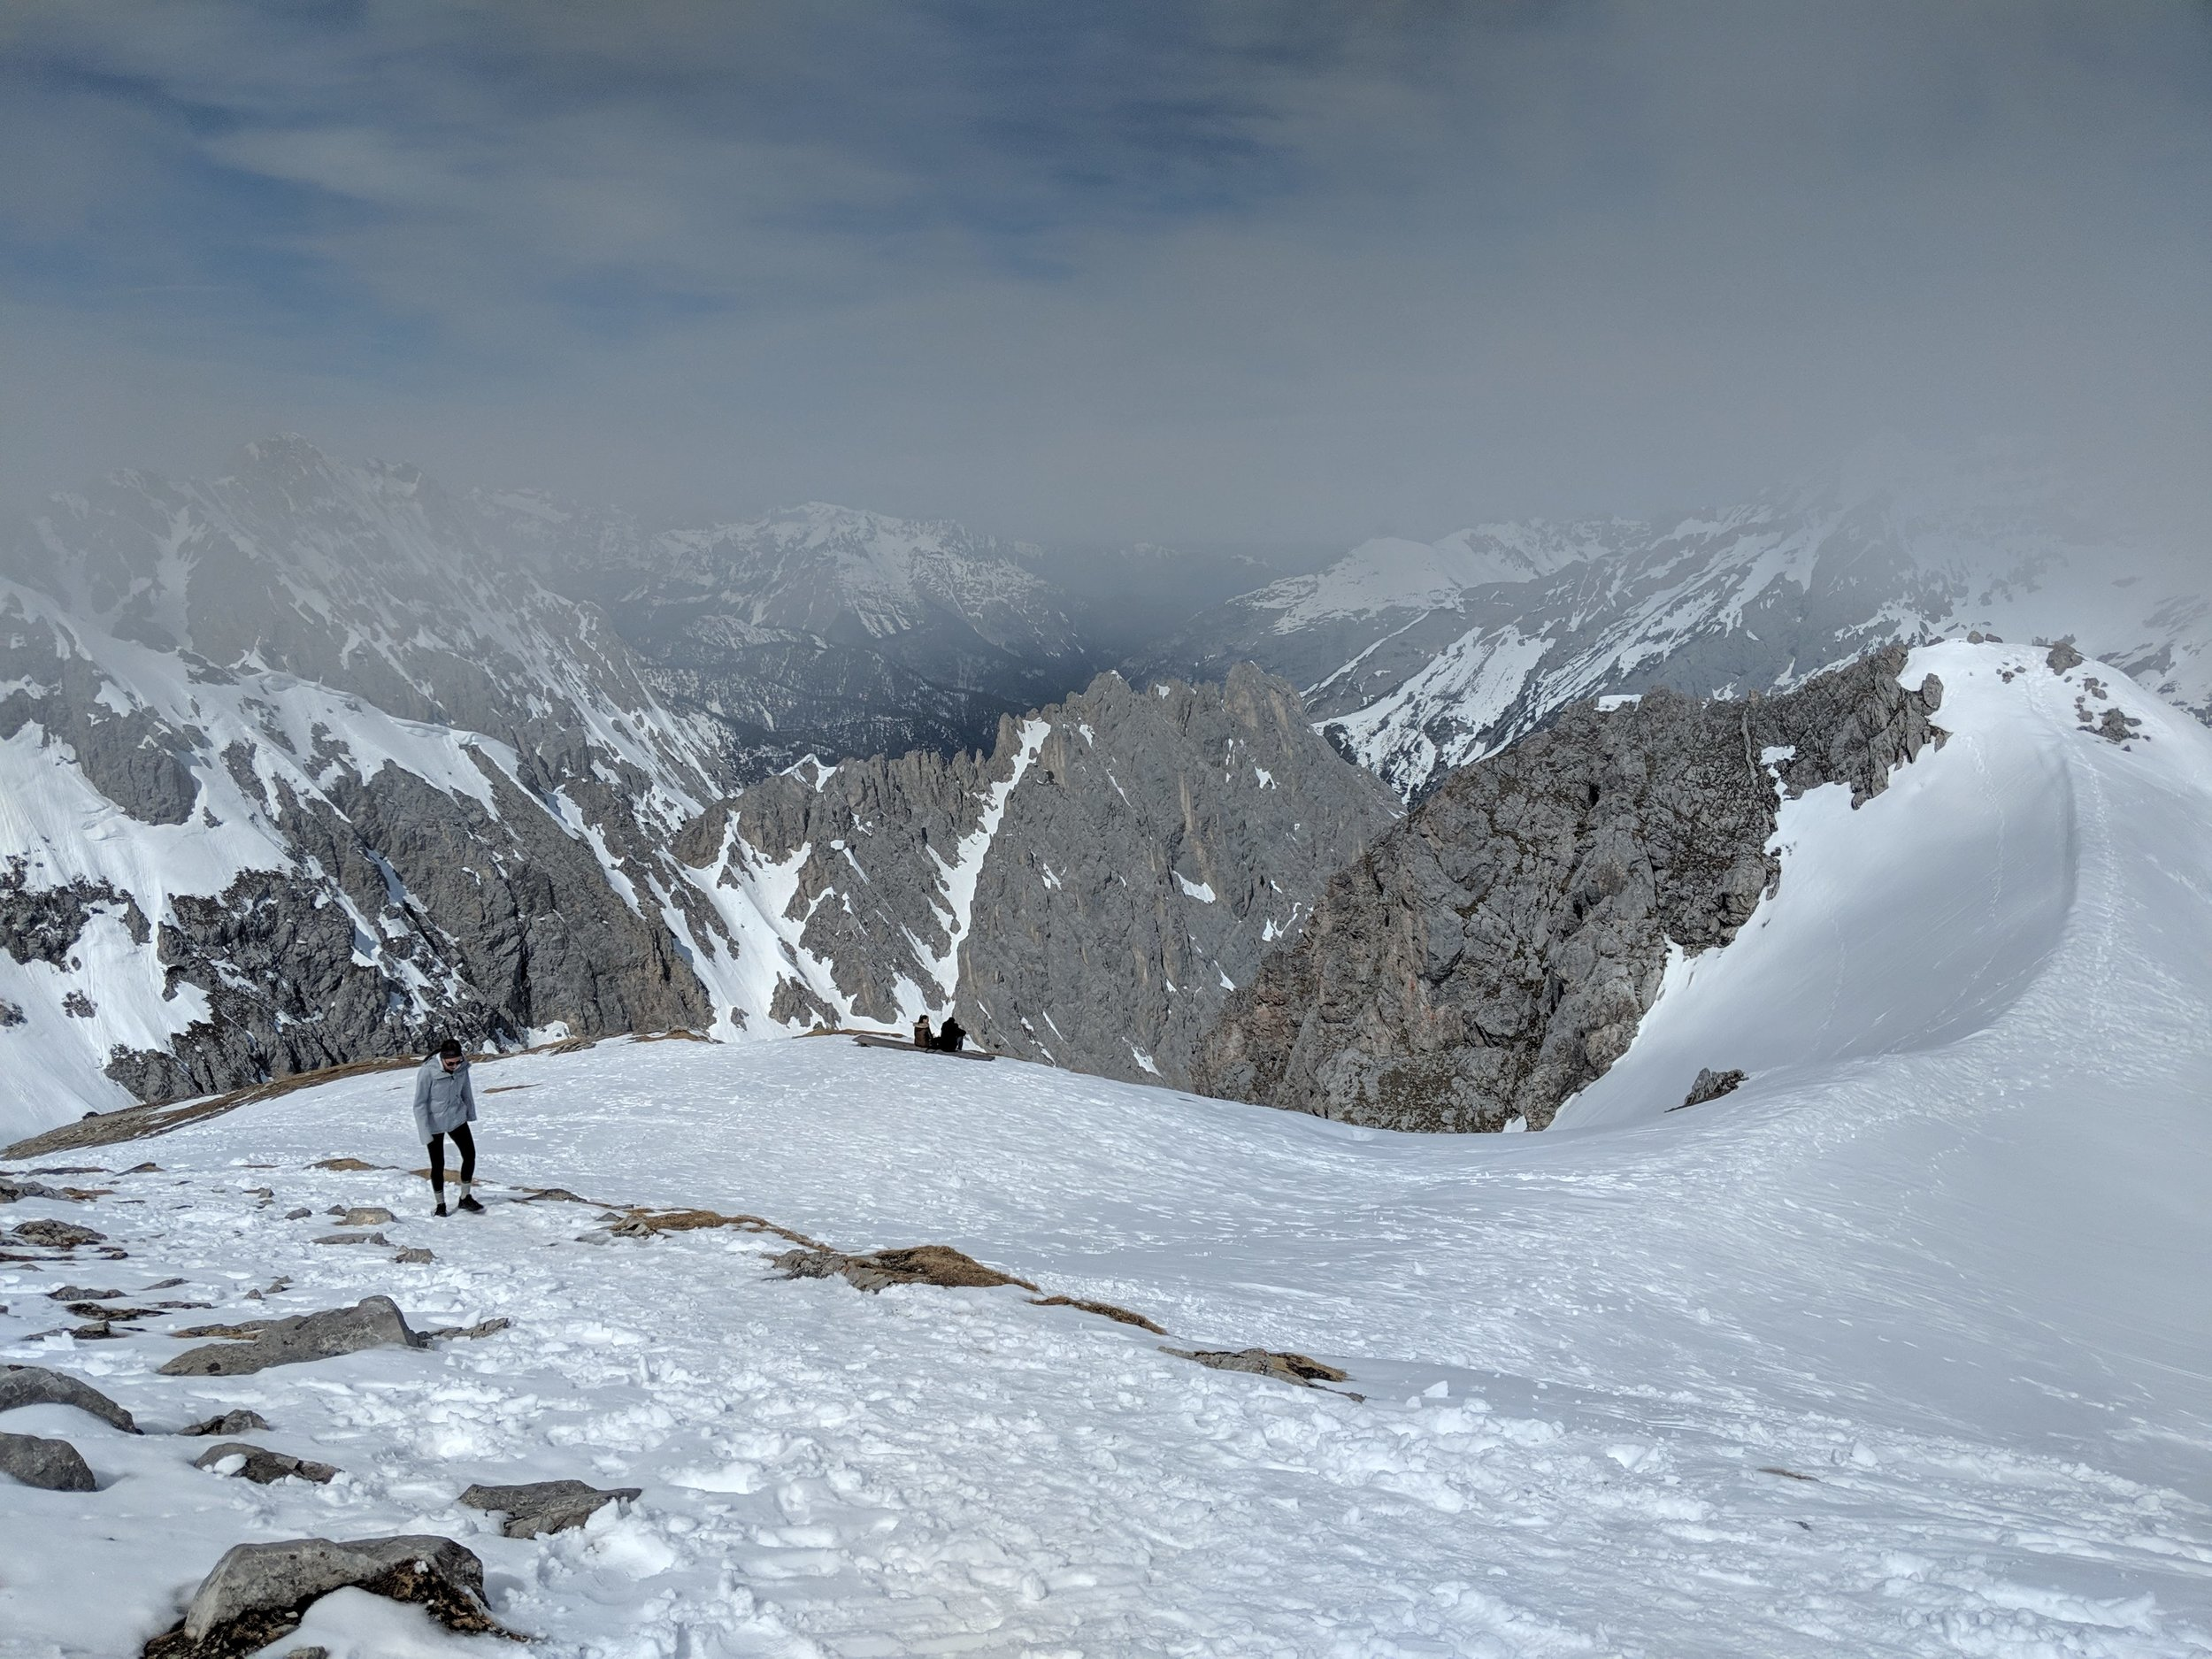 The trail to the summit at Hafelekar in the Nordkette mountains in Innsbruck.jpg